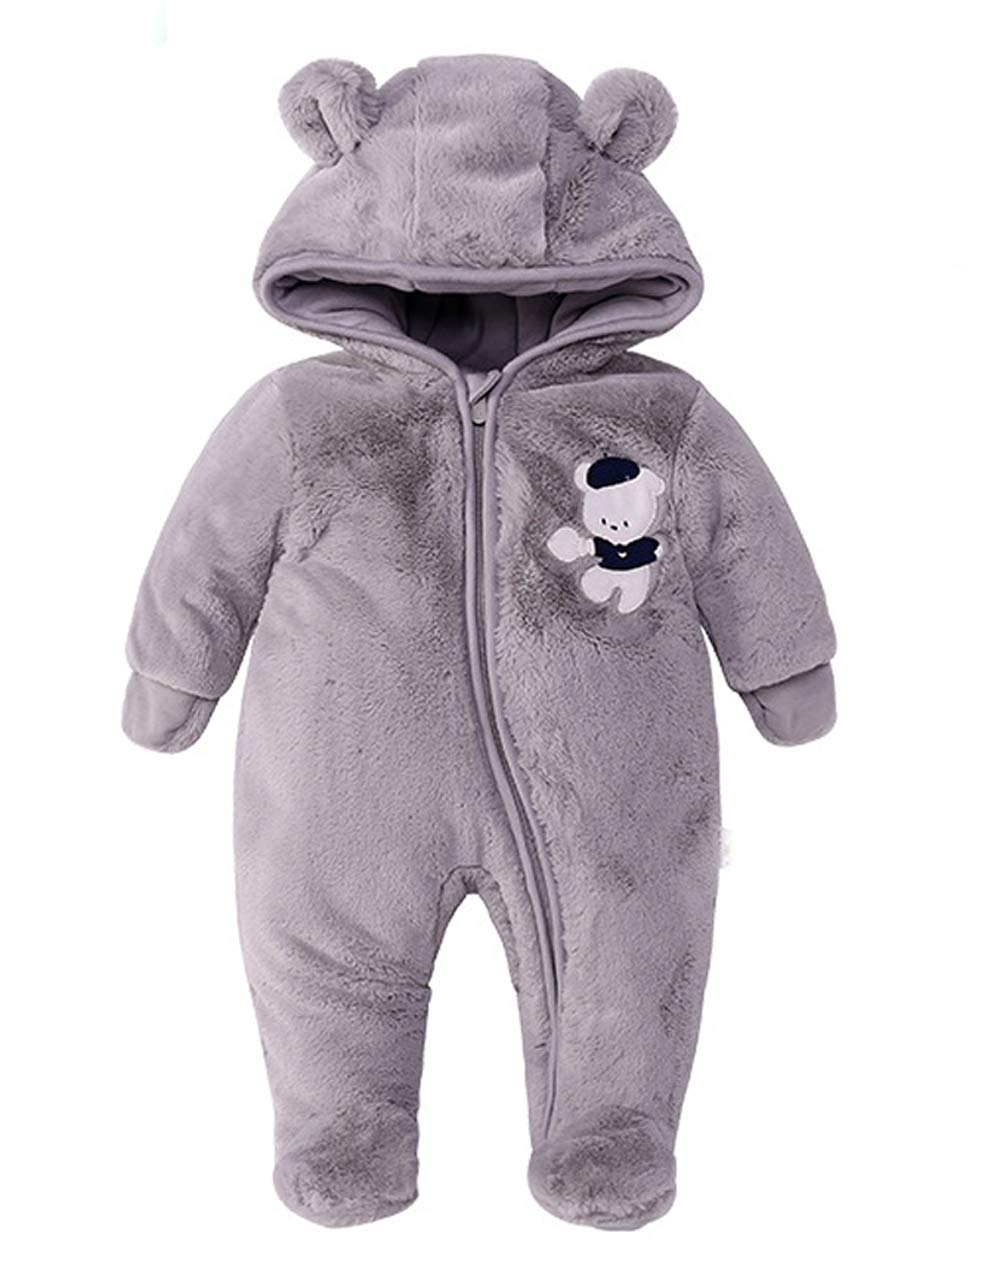 LJ Unisex-Baby Footie Snowsuit White for 12-18month by LJ